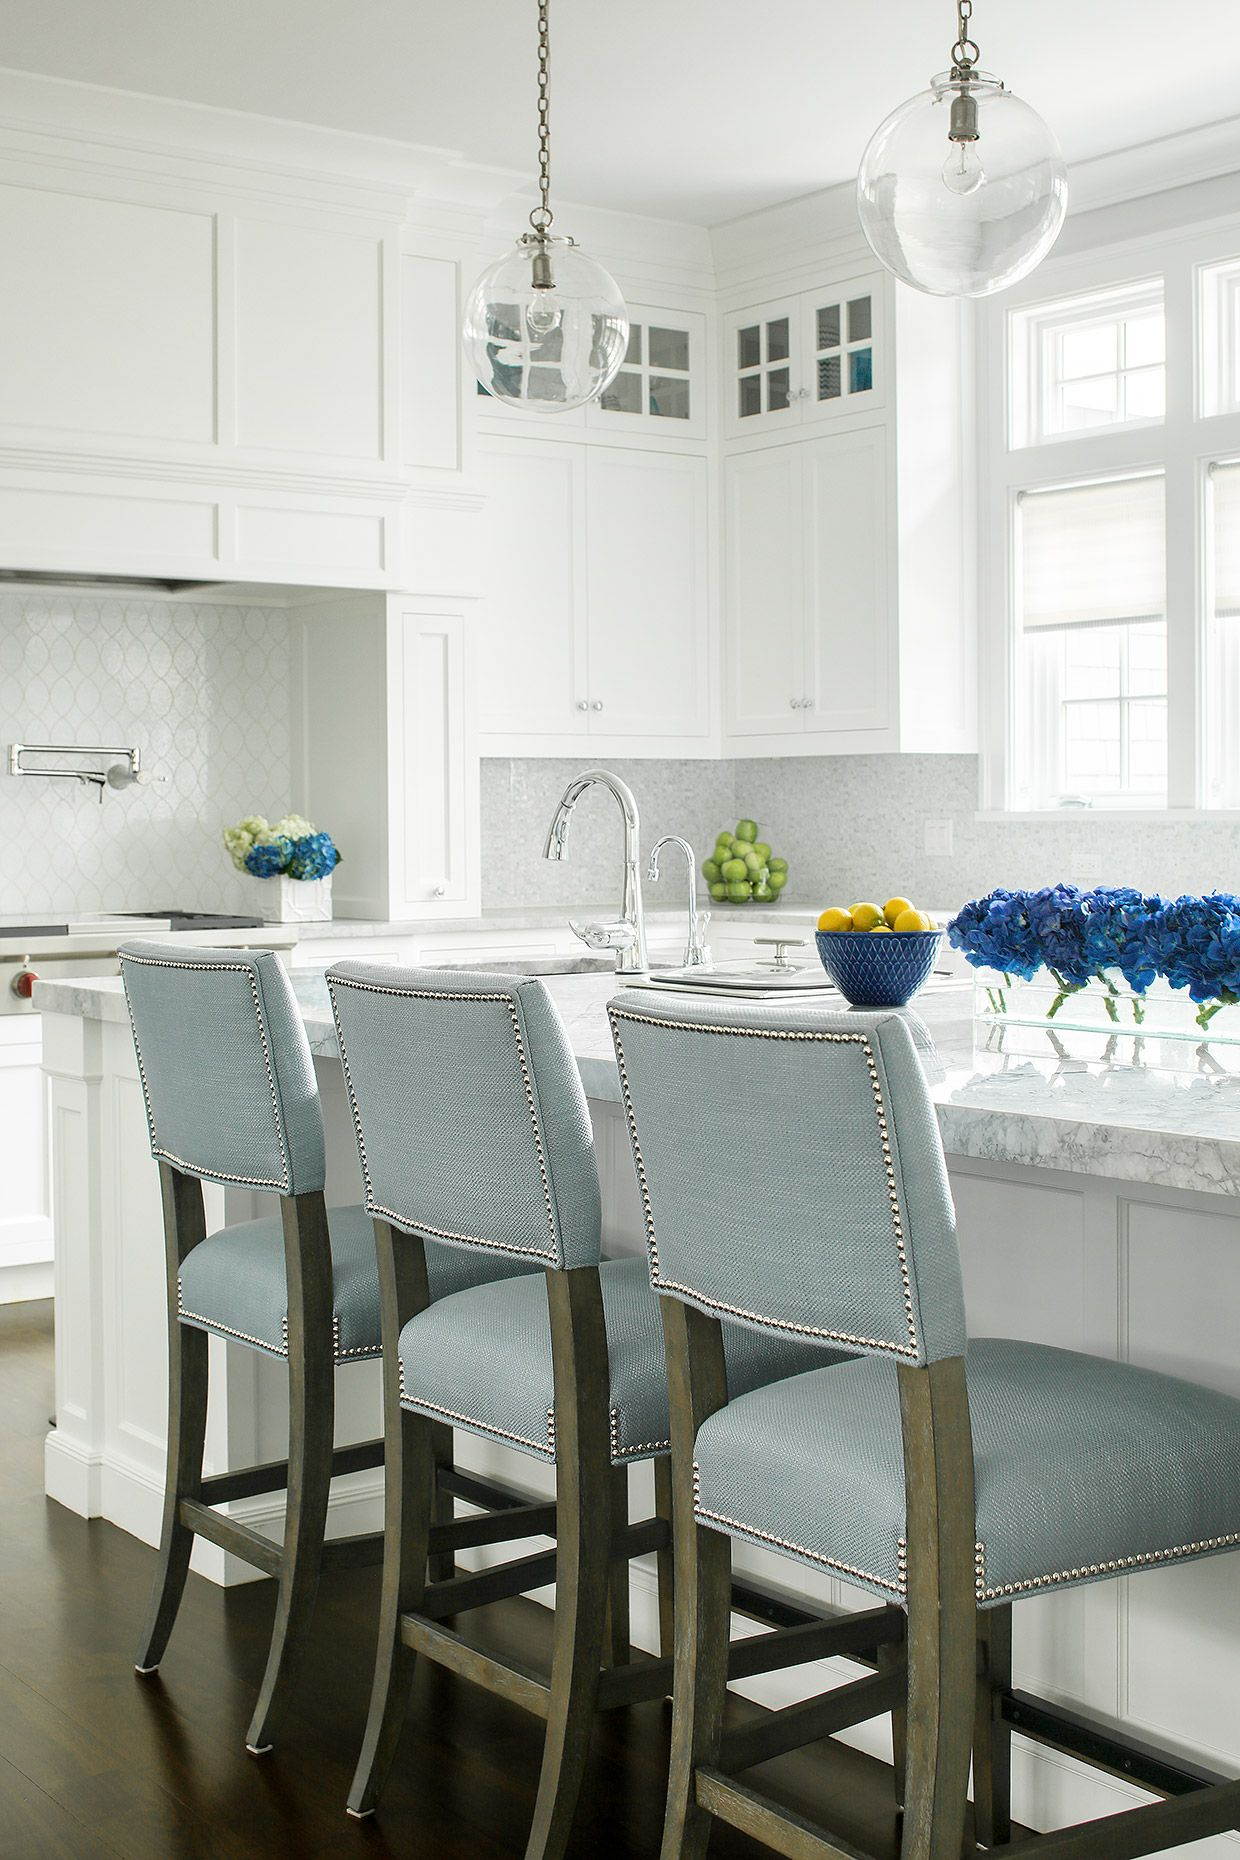 Stools Kitchen Islands White On White Kitchen Baby Blue Pop Jem Cabinetry My Work